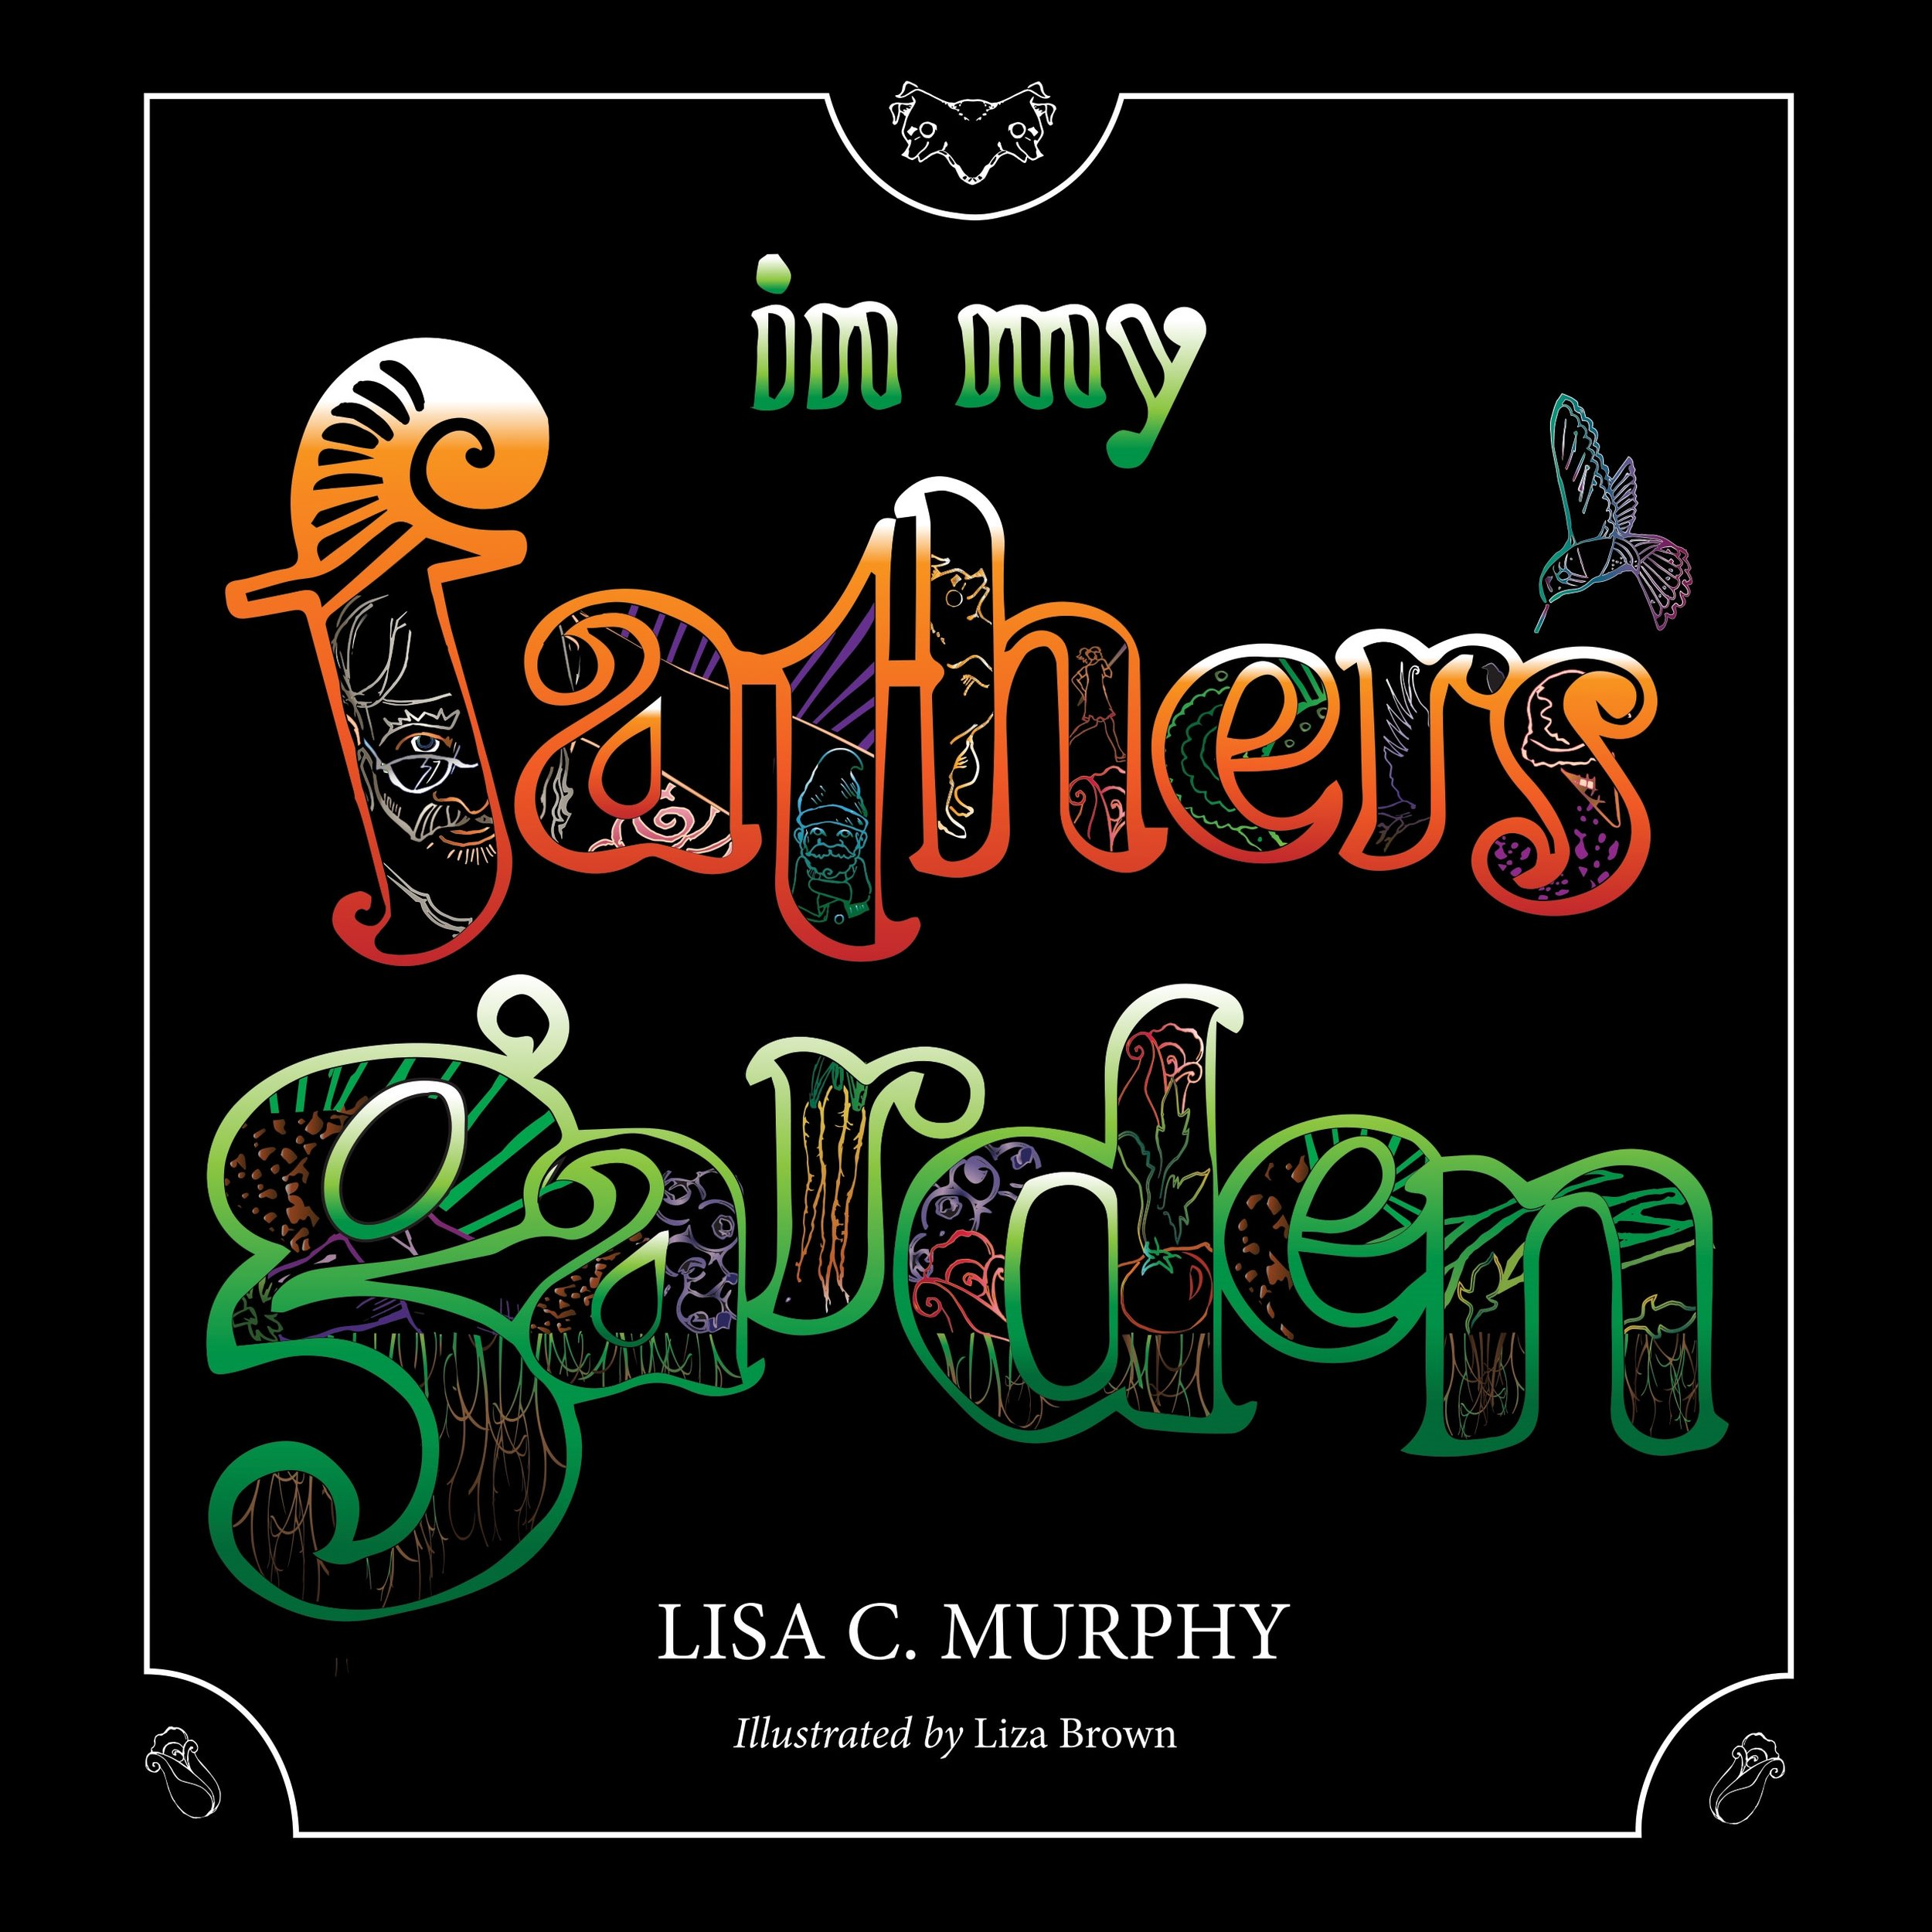 Father'sGarden 8X8 cover.jpg